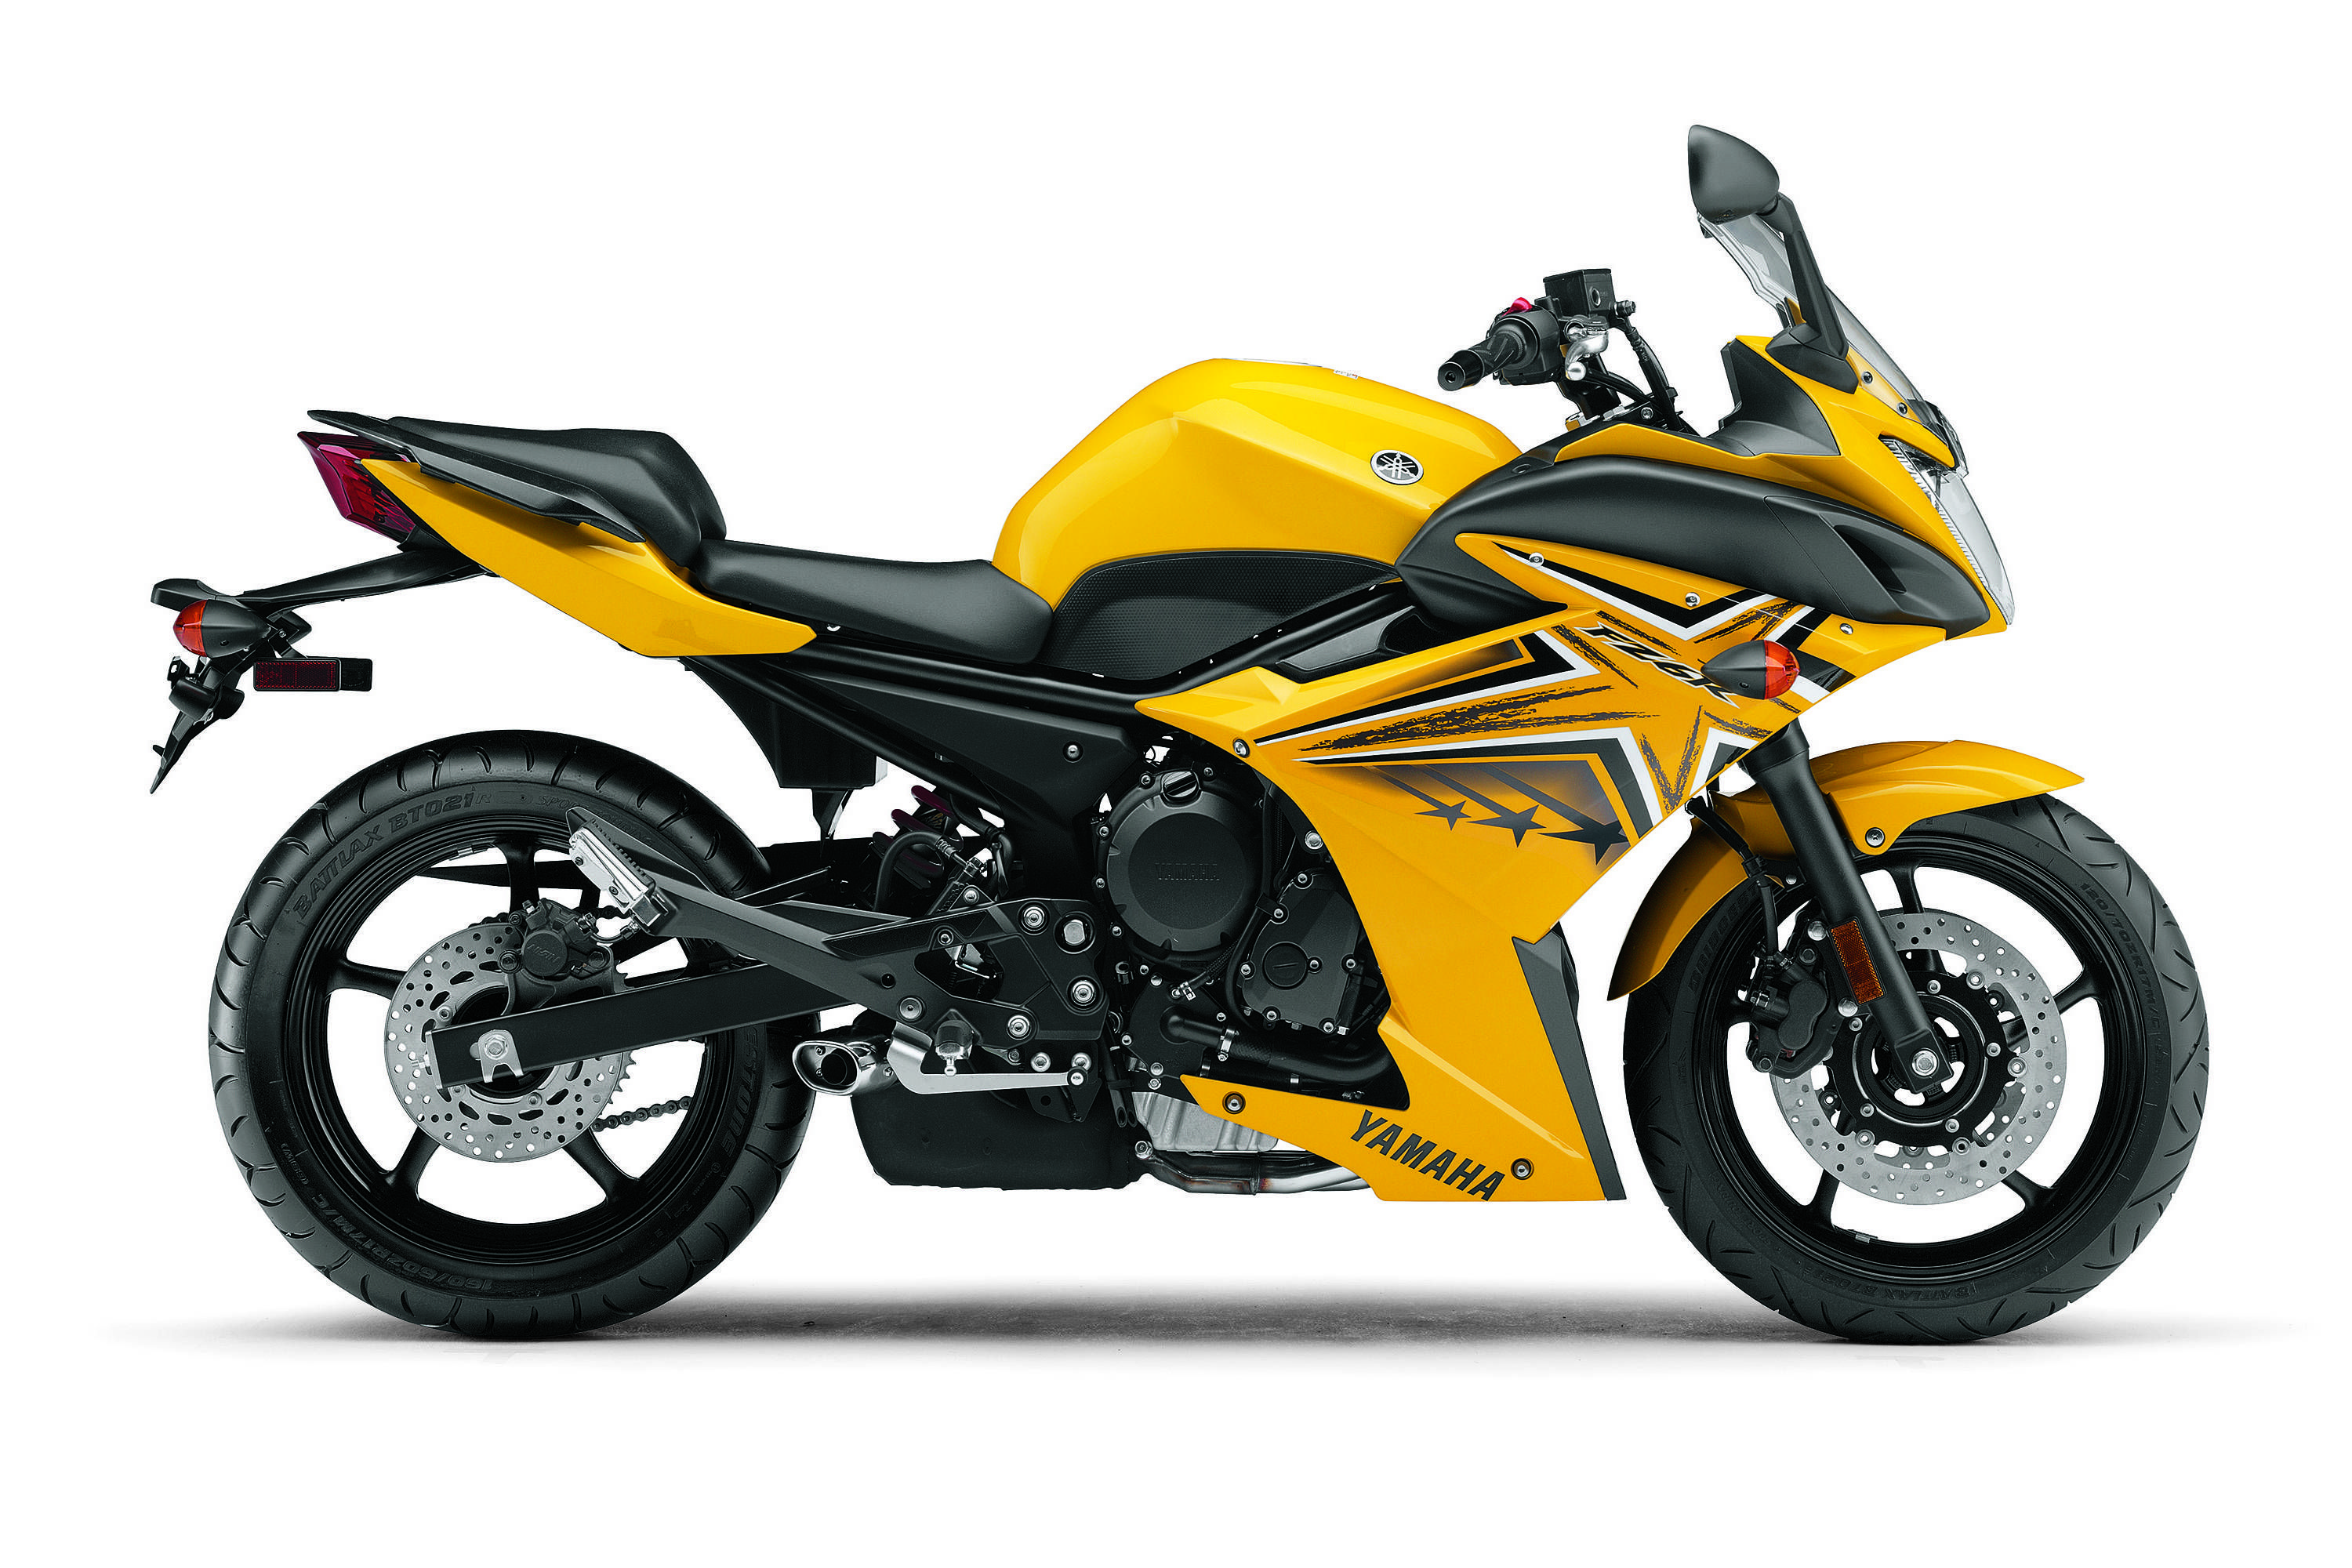 09 Yamaha Fz6r Motorcycles for sale